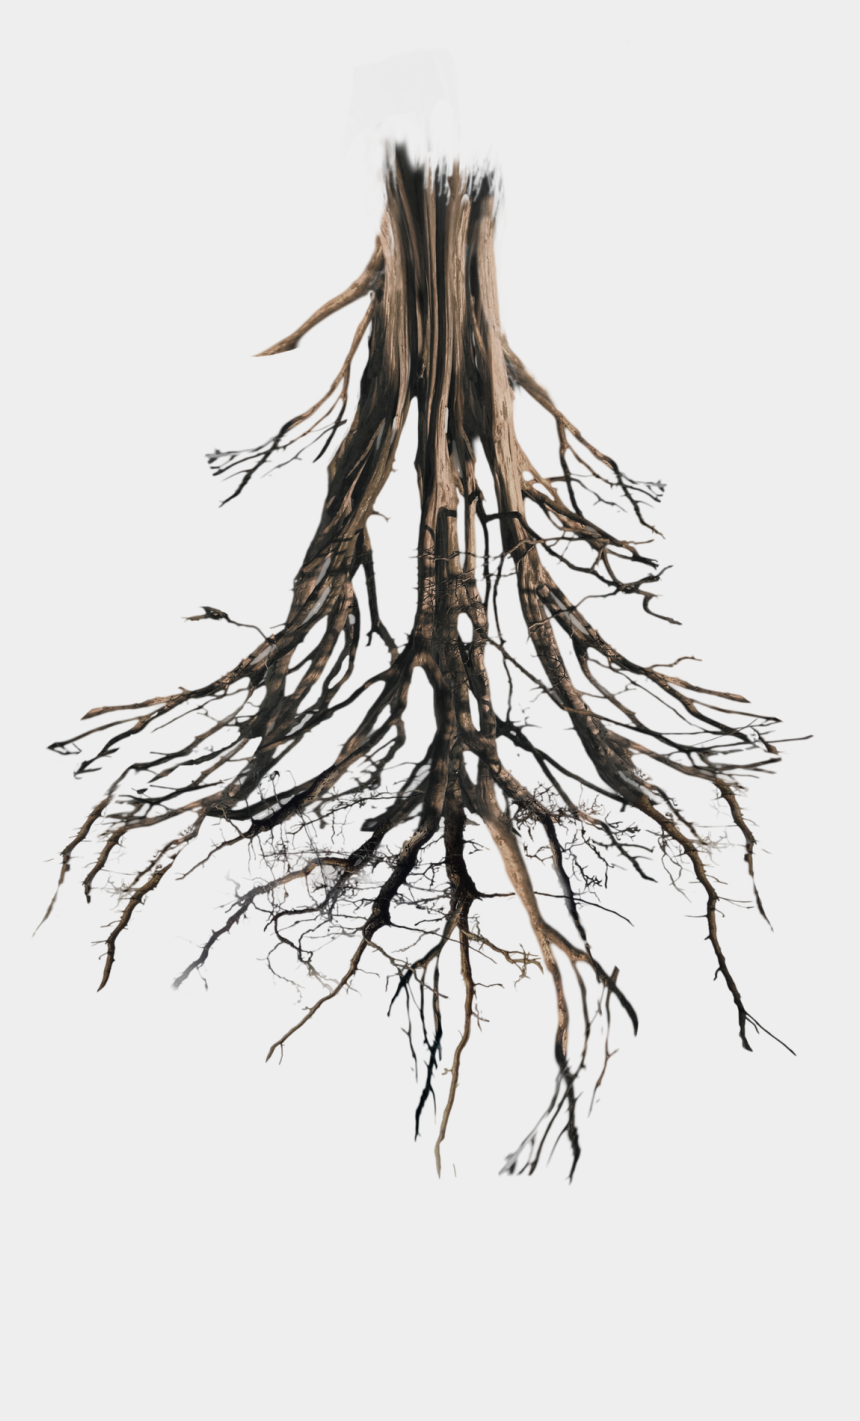 tree roots clipart, Cartoons - Tree With Roots Png - Transparent Tree Roots Png